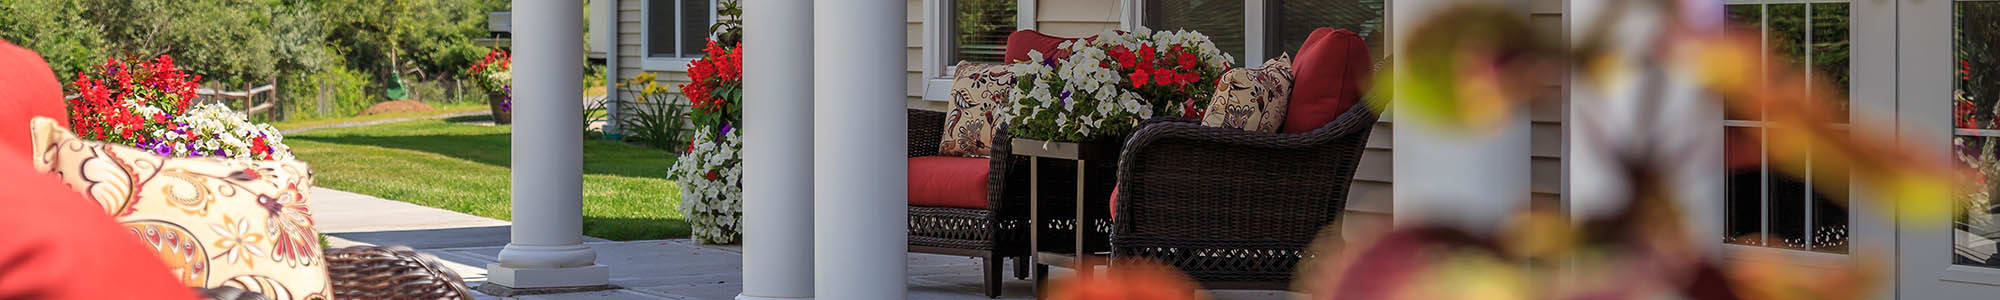 All American Assisted Living at Raynham offers excellent dining options in Raynham